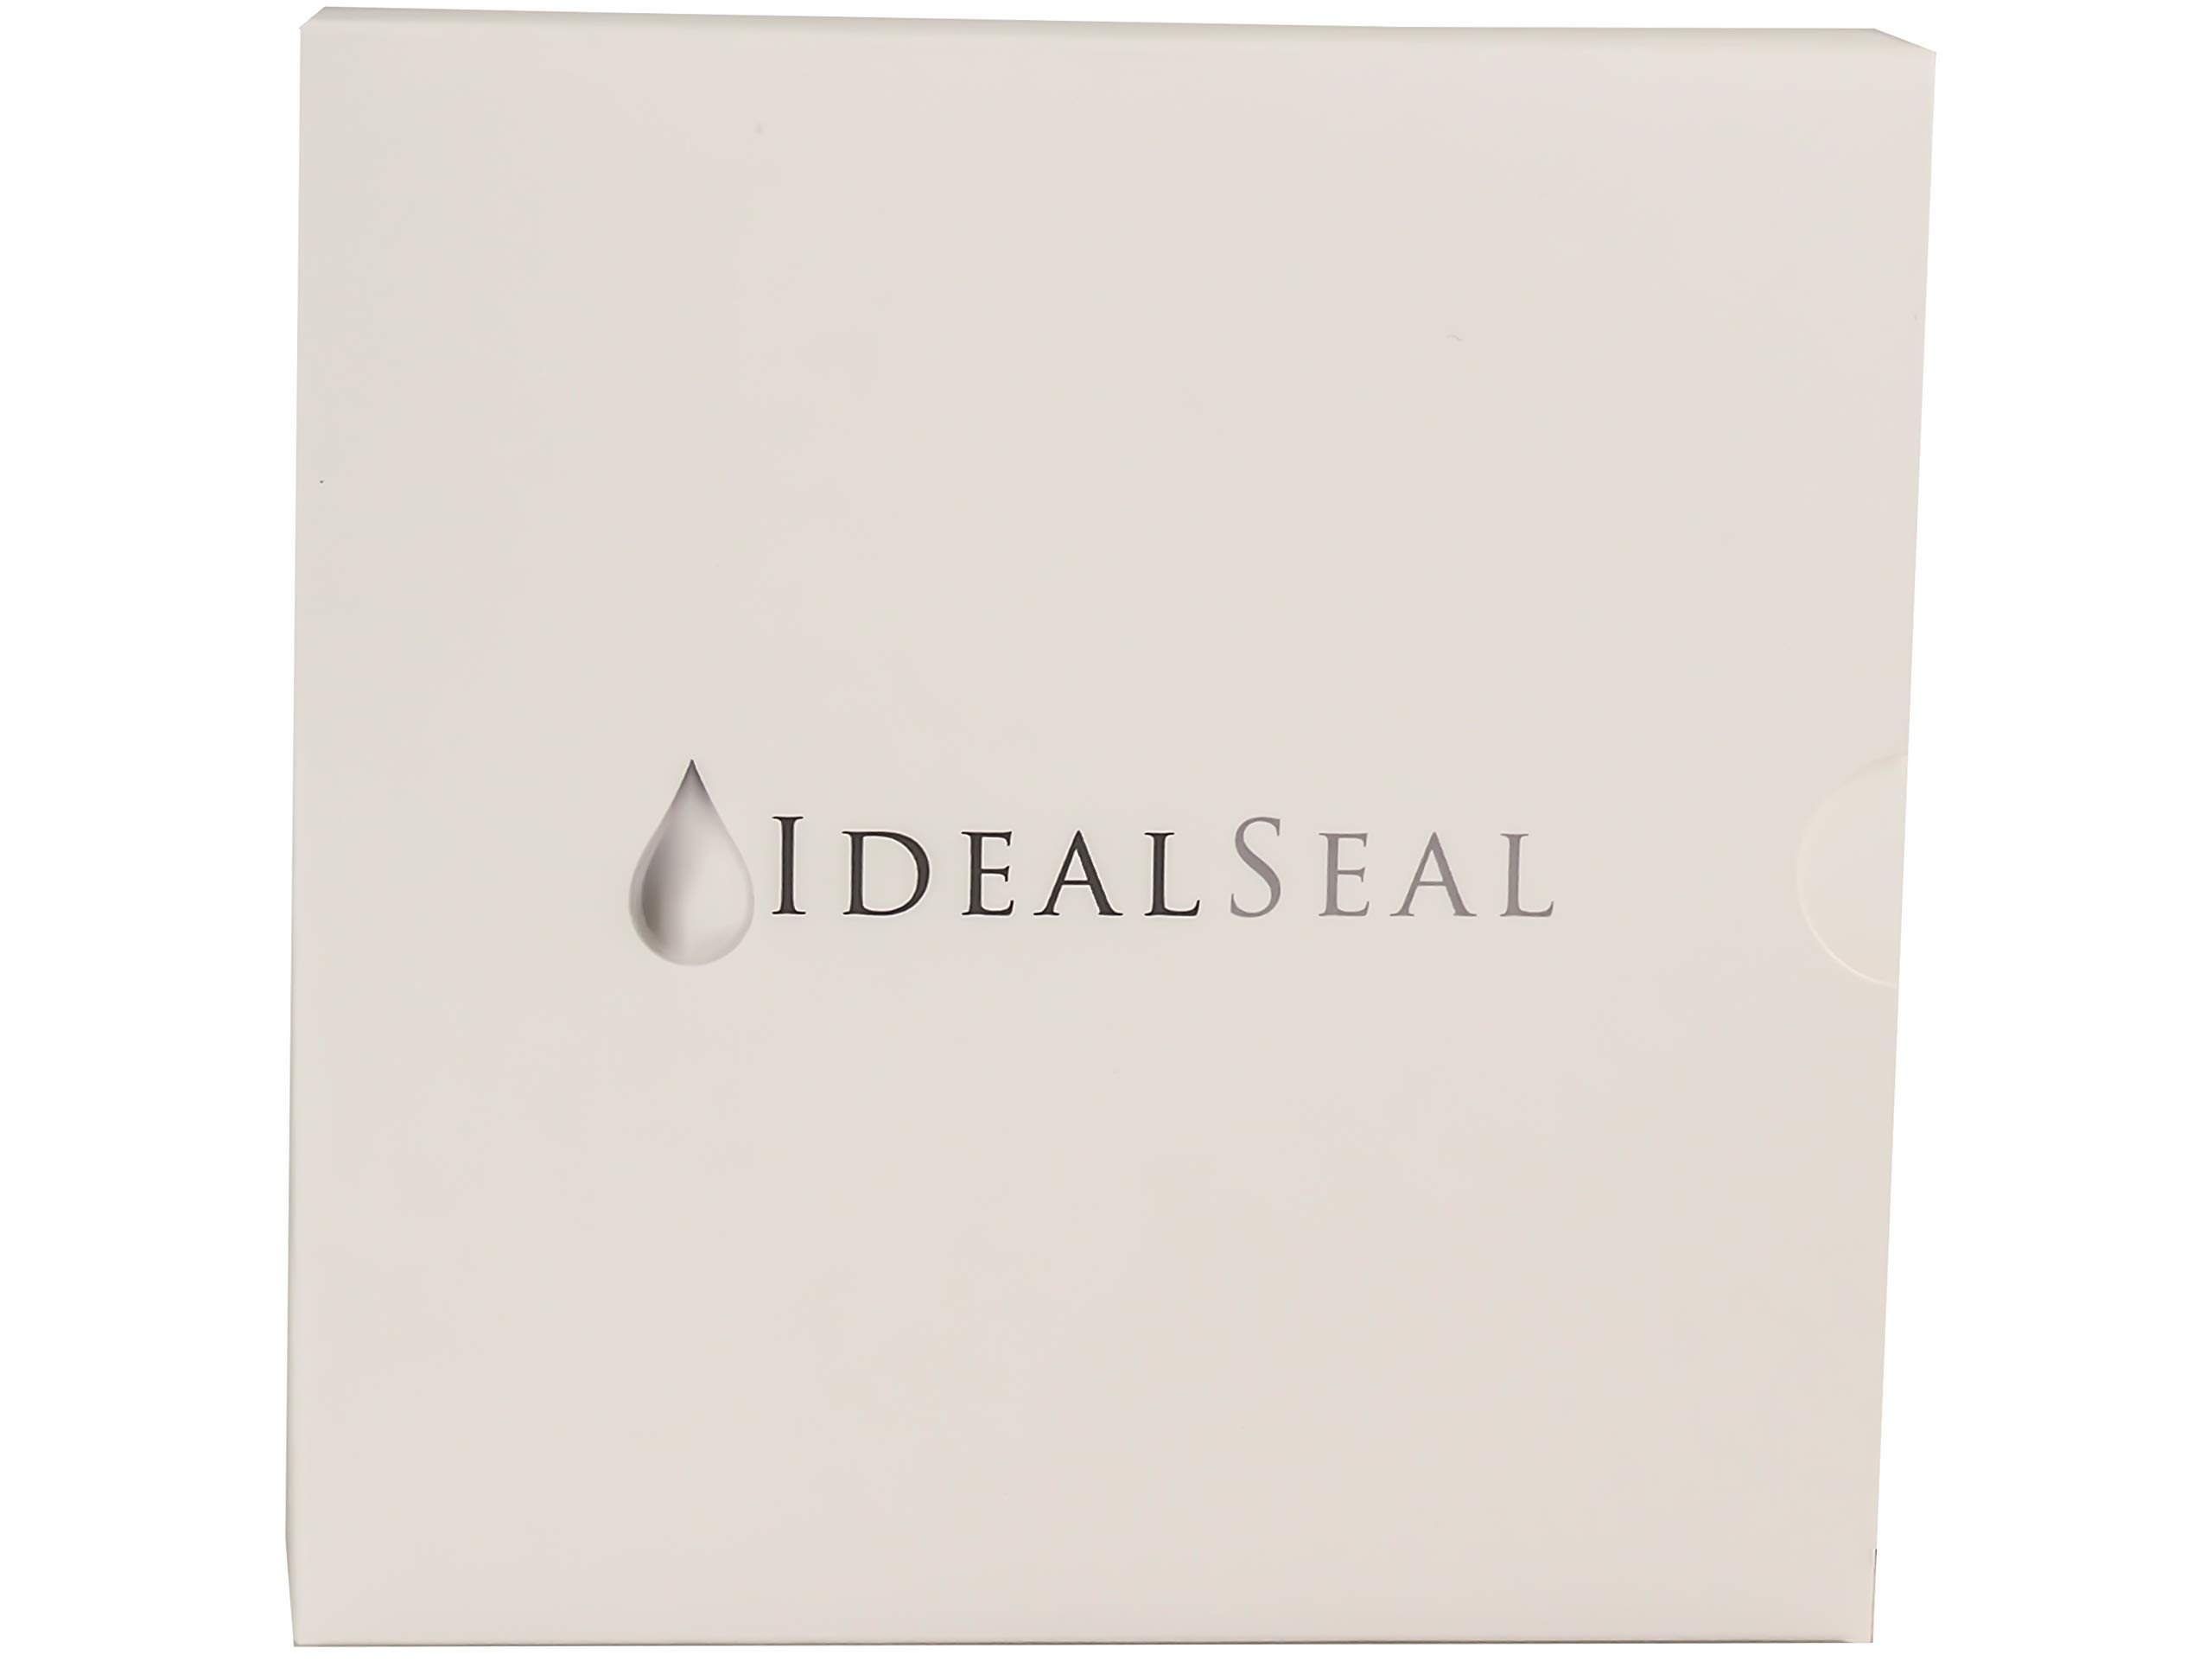 Pinwheel Postage Meter Tapes~Made in USA~ (Approved) Works in Pitney Bowes, Hasler, Neopost and Francotyp Postalia. 600 Tapes in a Easy Feed Box by IDEALSEAL